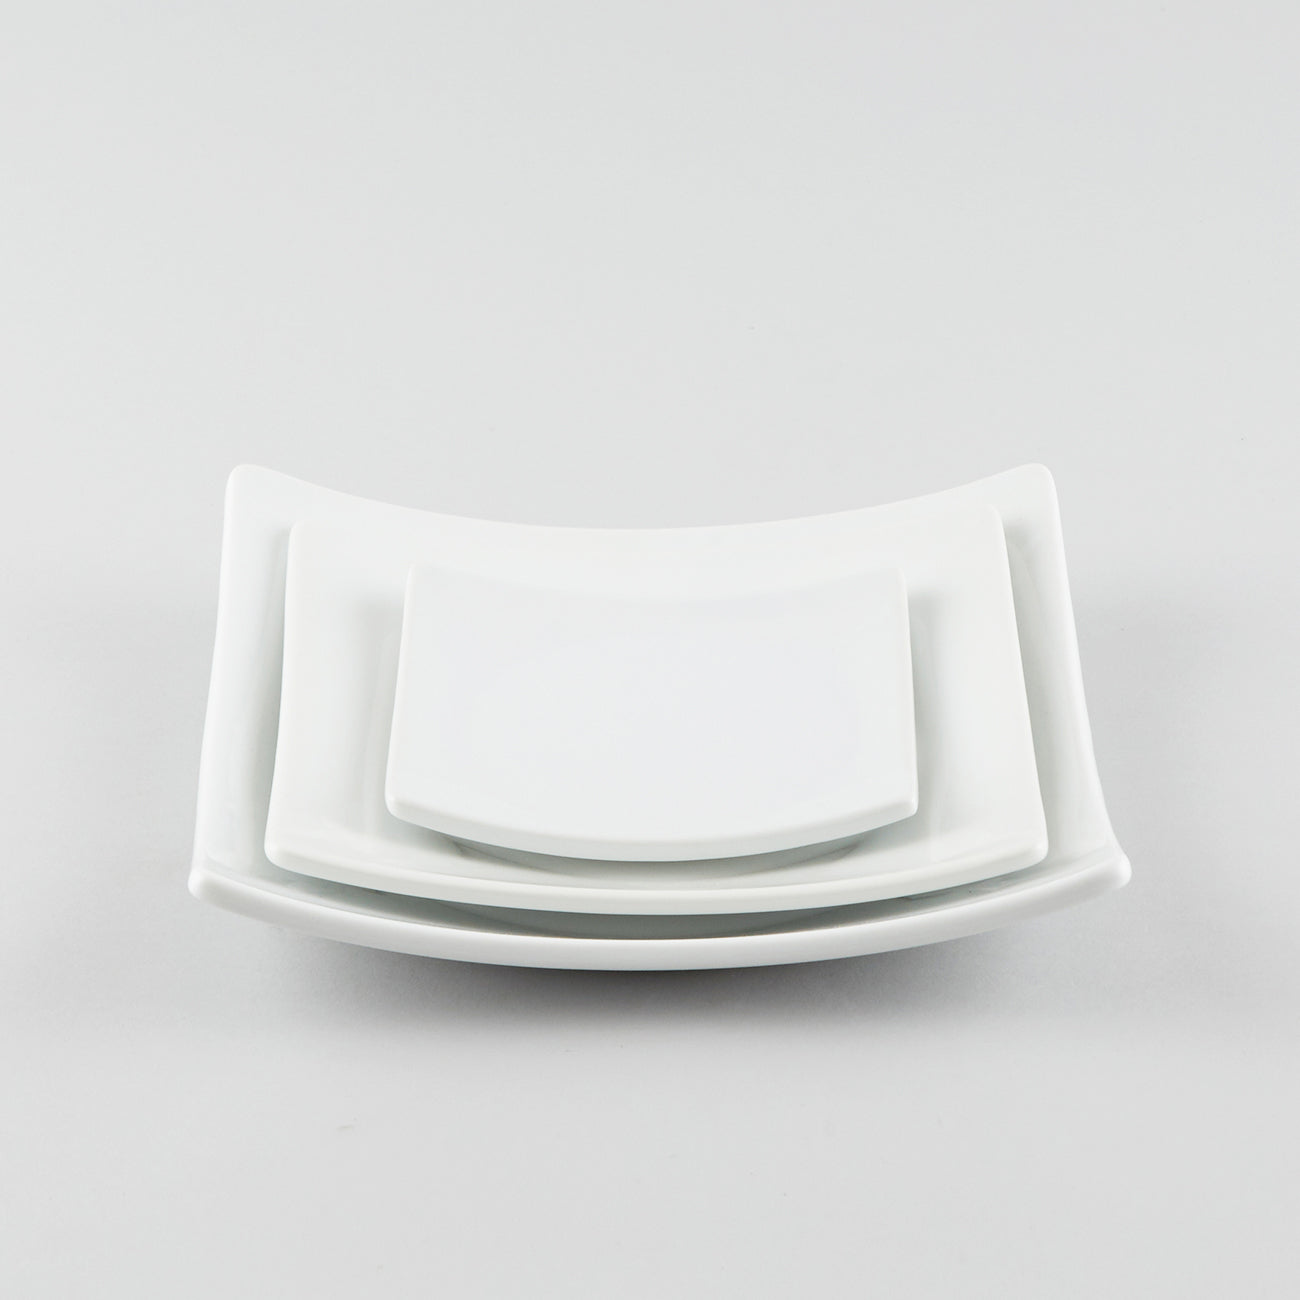 Full-Moon Sq. Plate with Raised Corners - White (S)